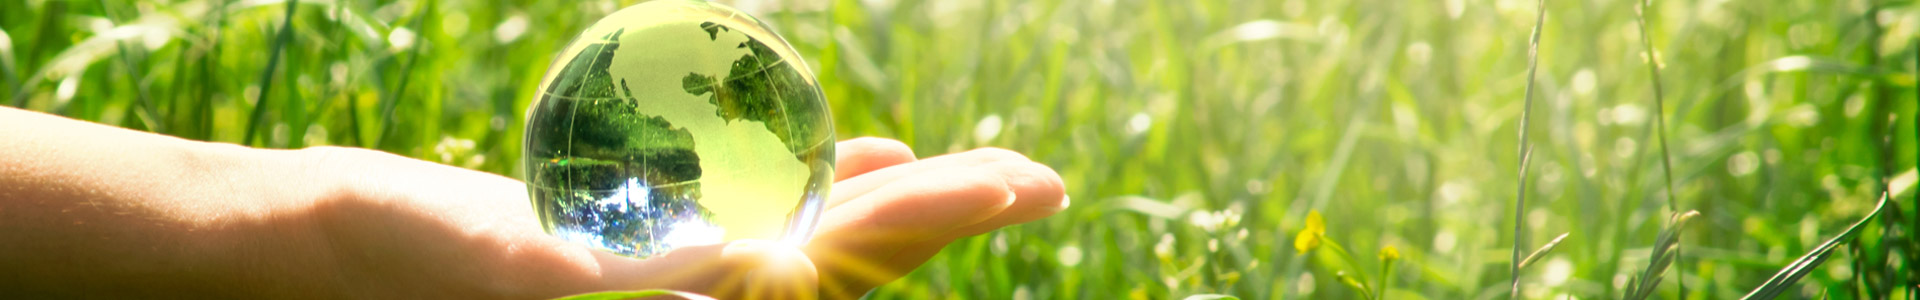 woman's hand holding a crystal globe in front of thick grass